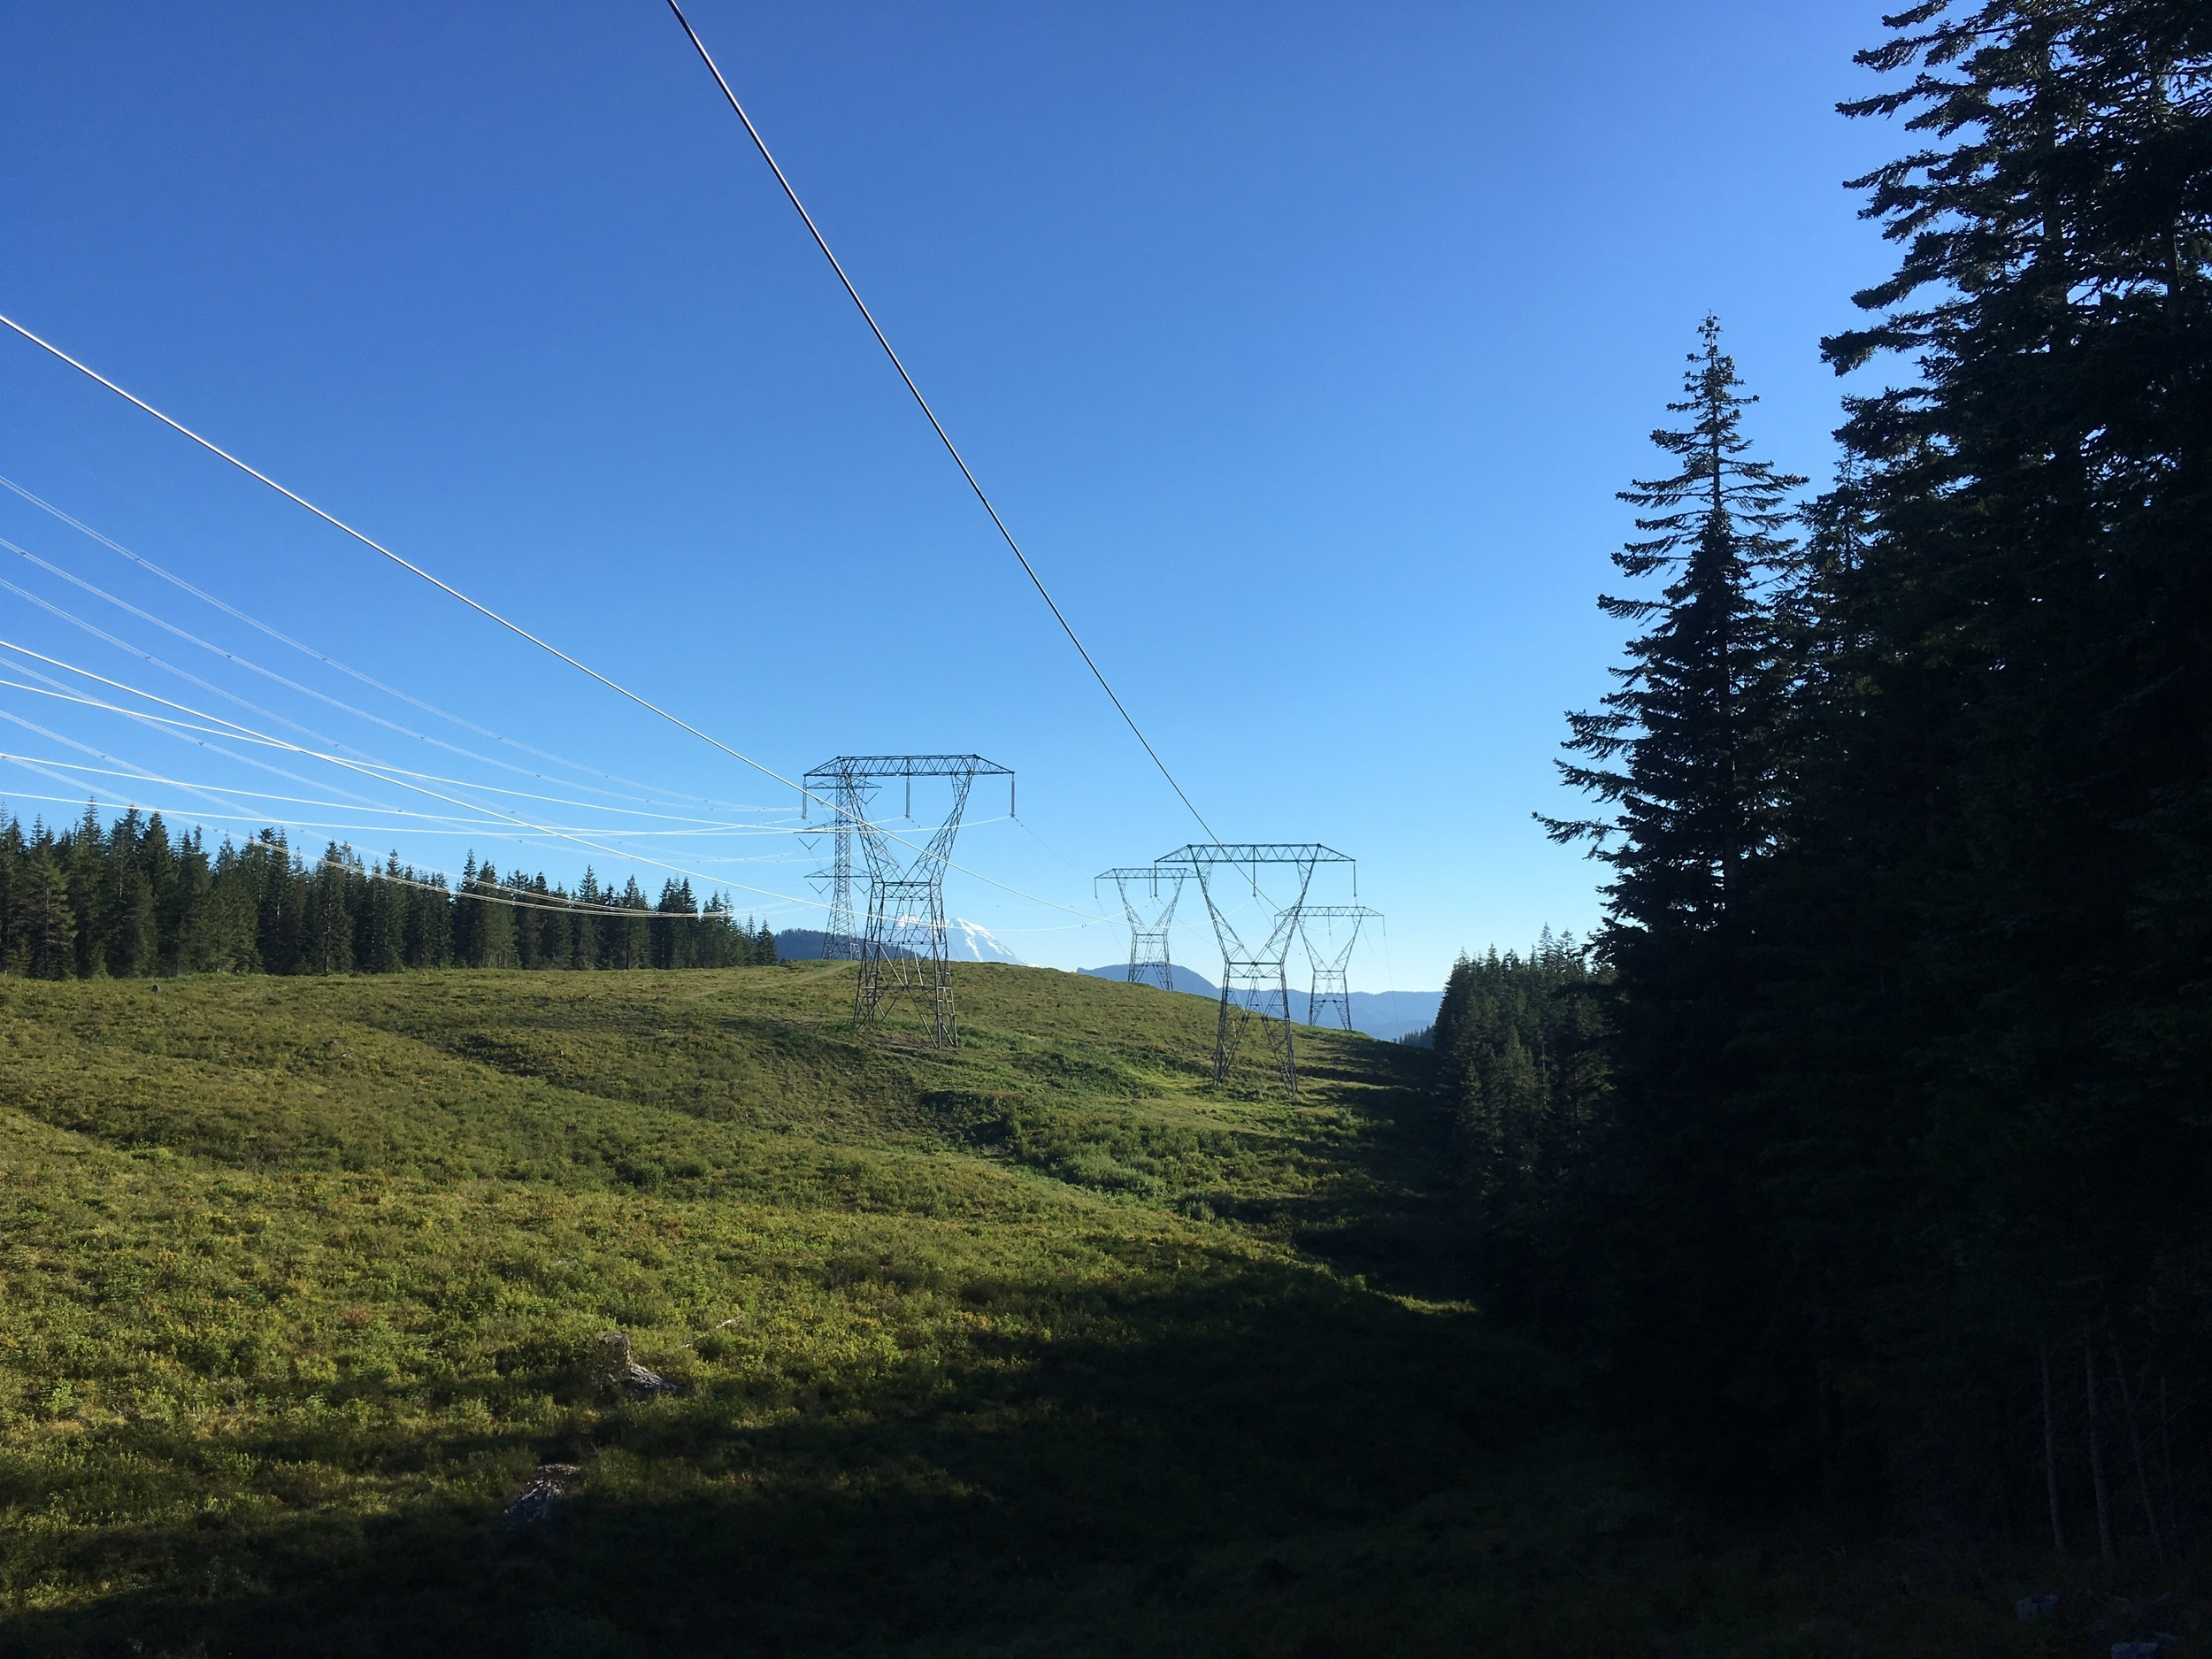 Our first views of Mt Rainier through high voltage powerlines.